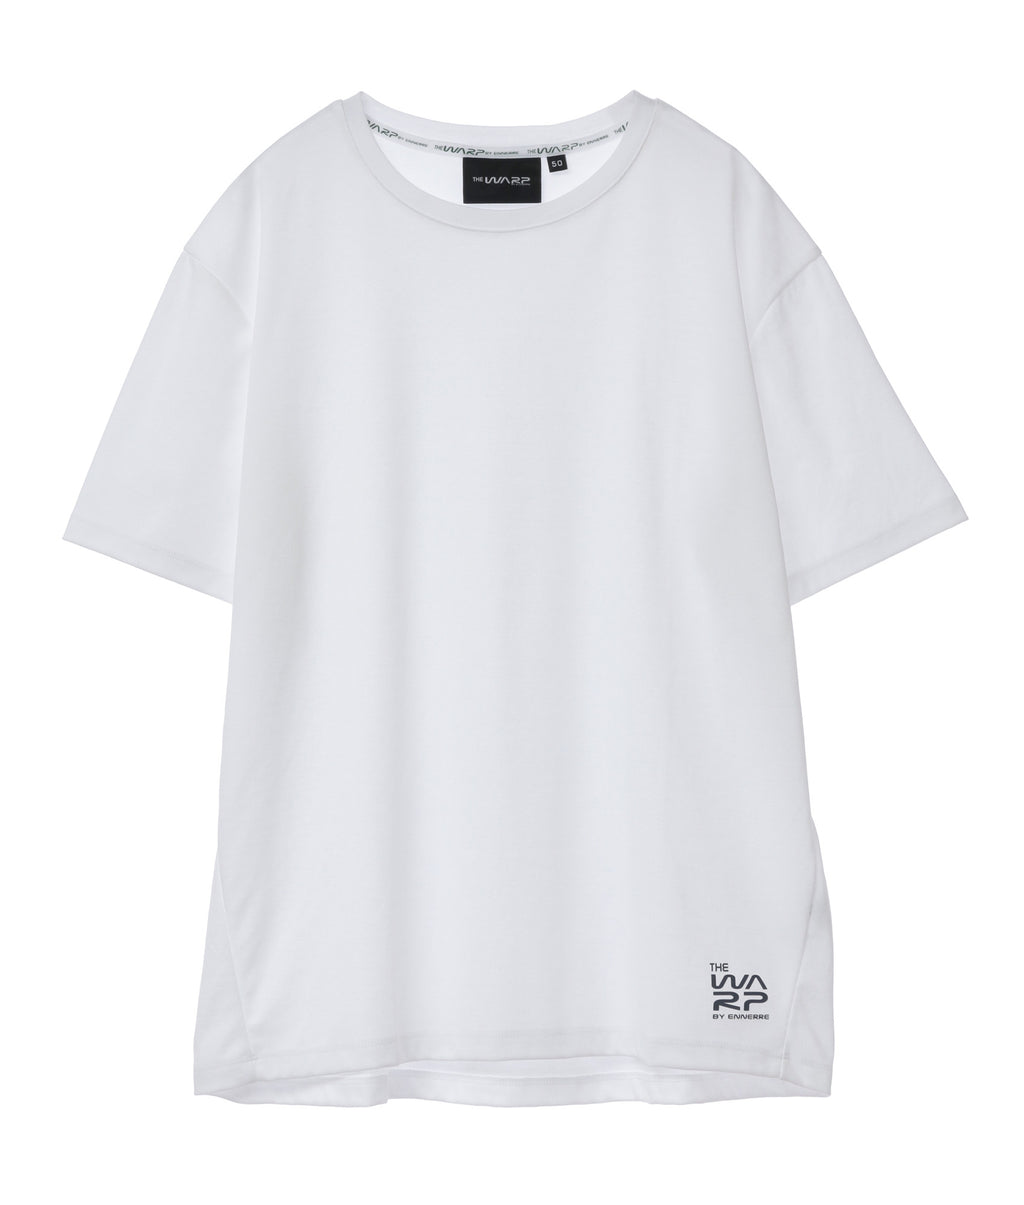 SS Active Tee 3